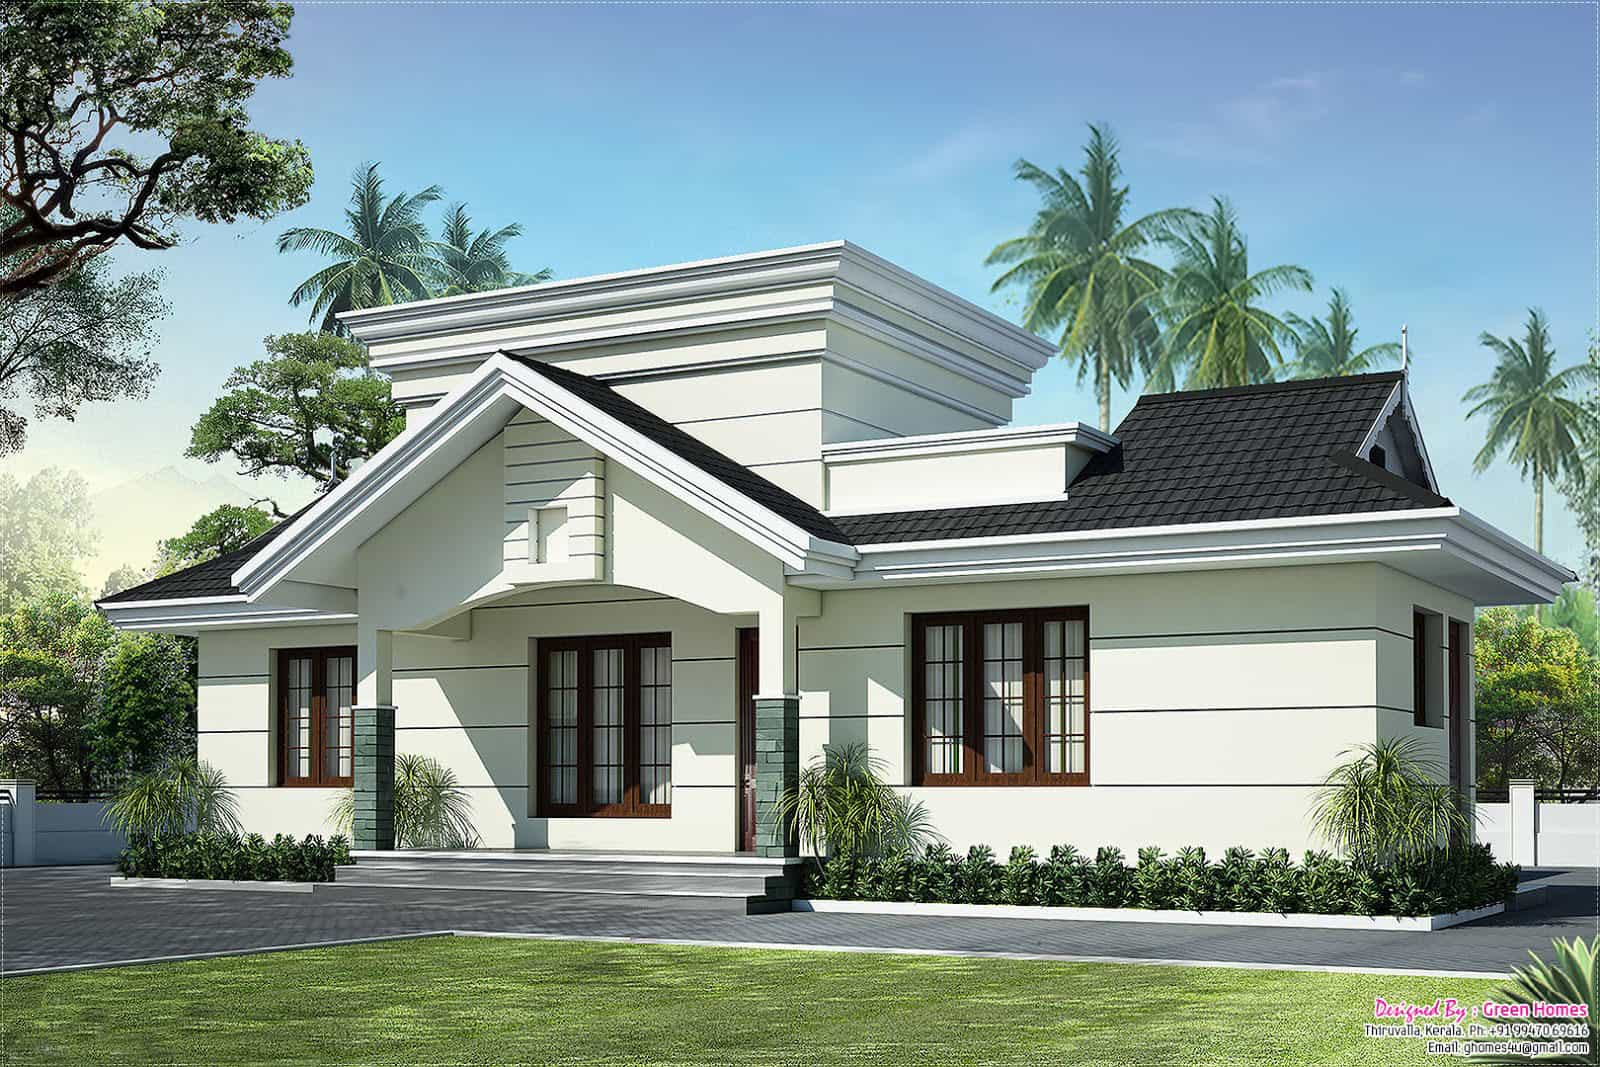 Simple and low budget house plans home design elements Low budget house plans